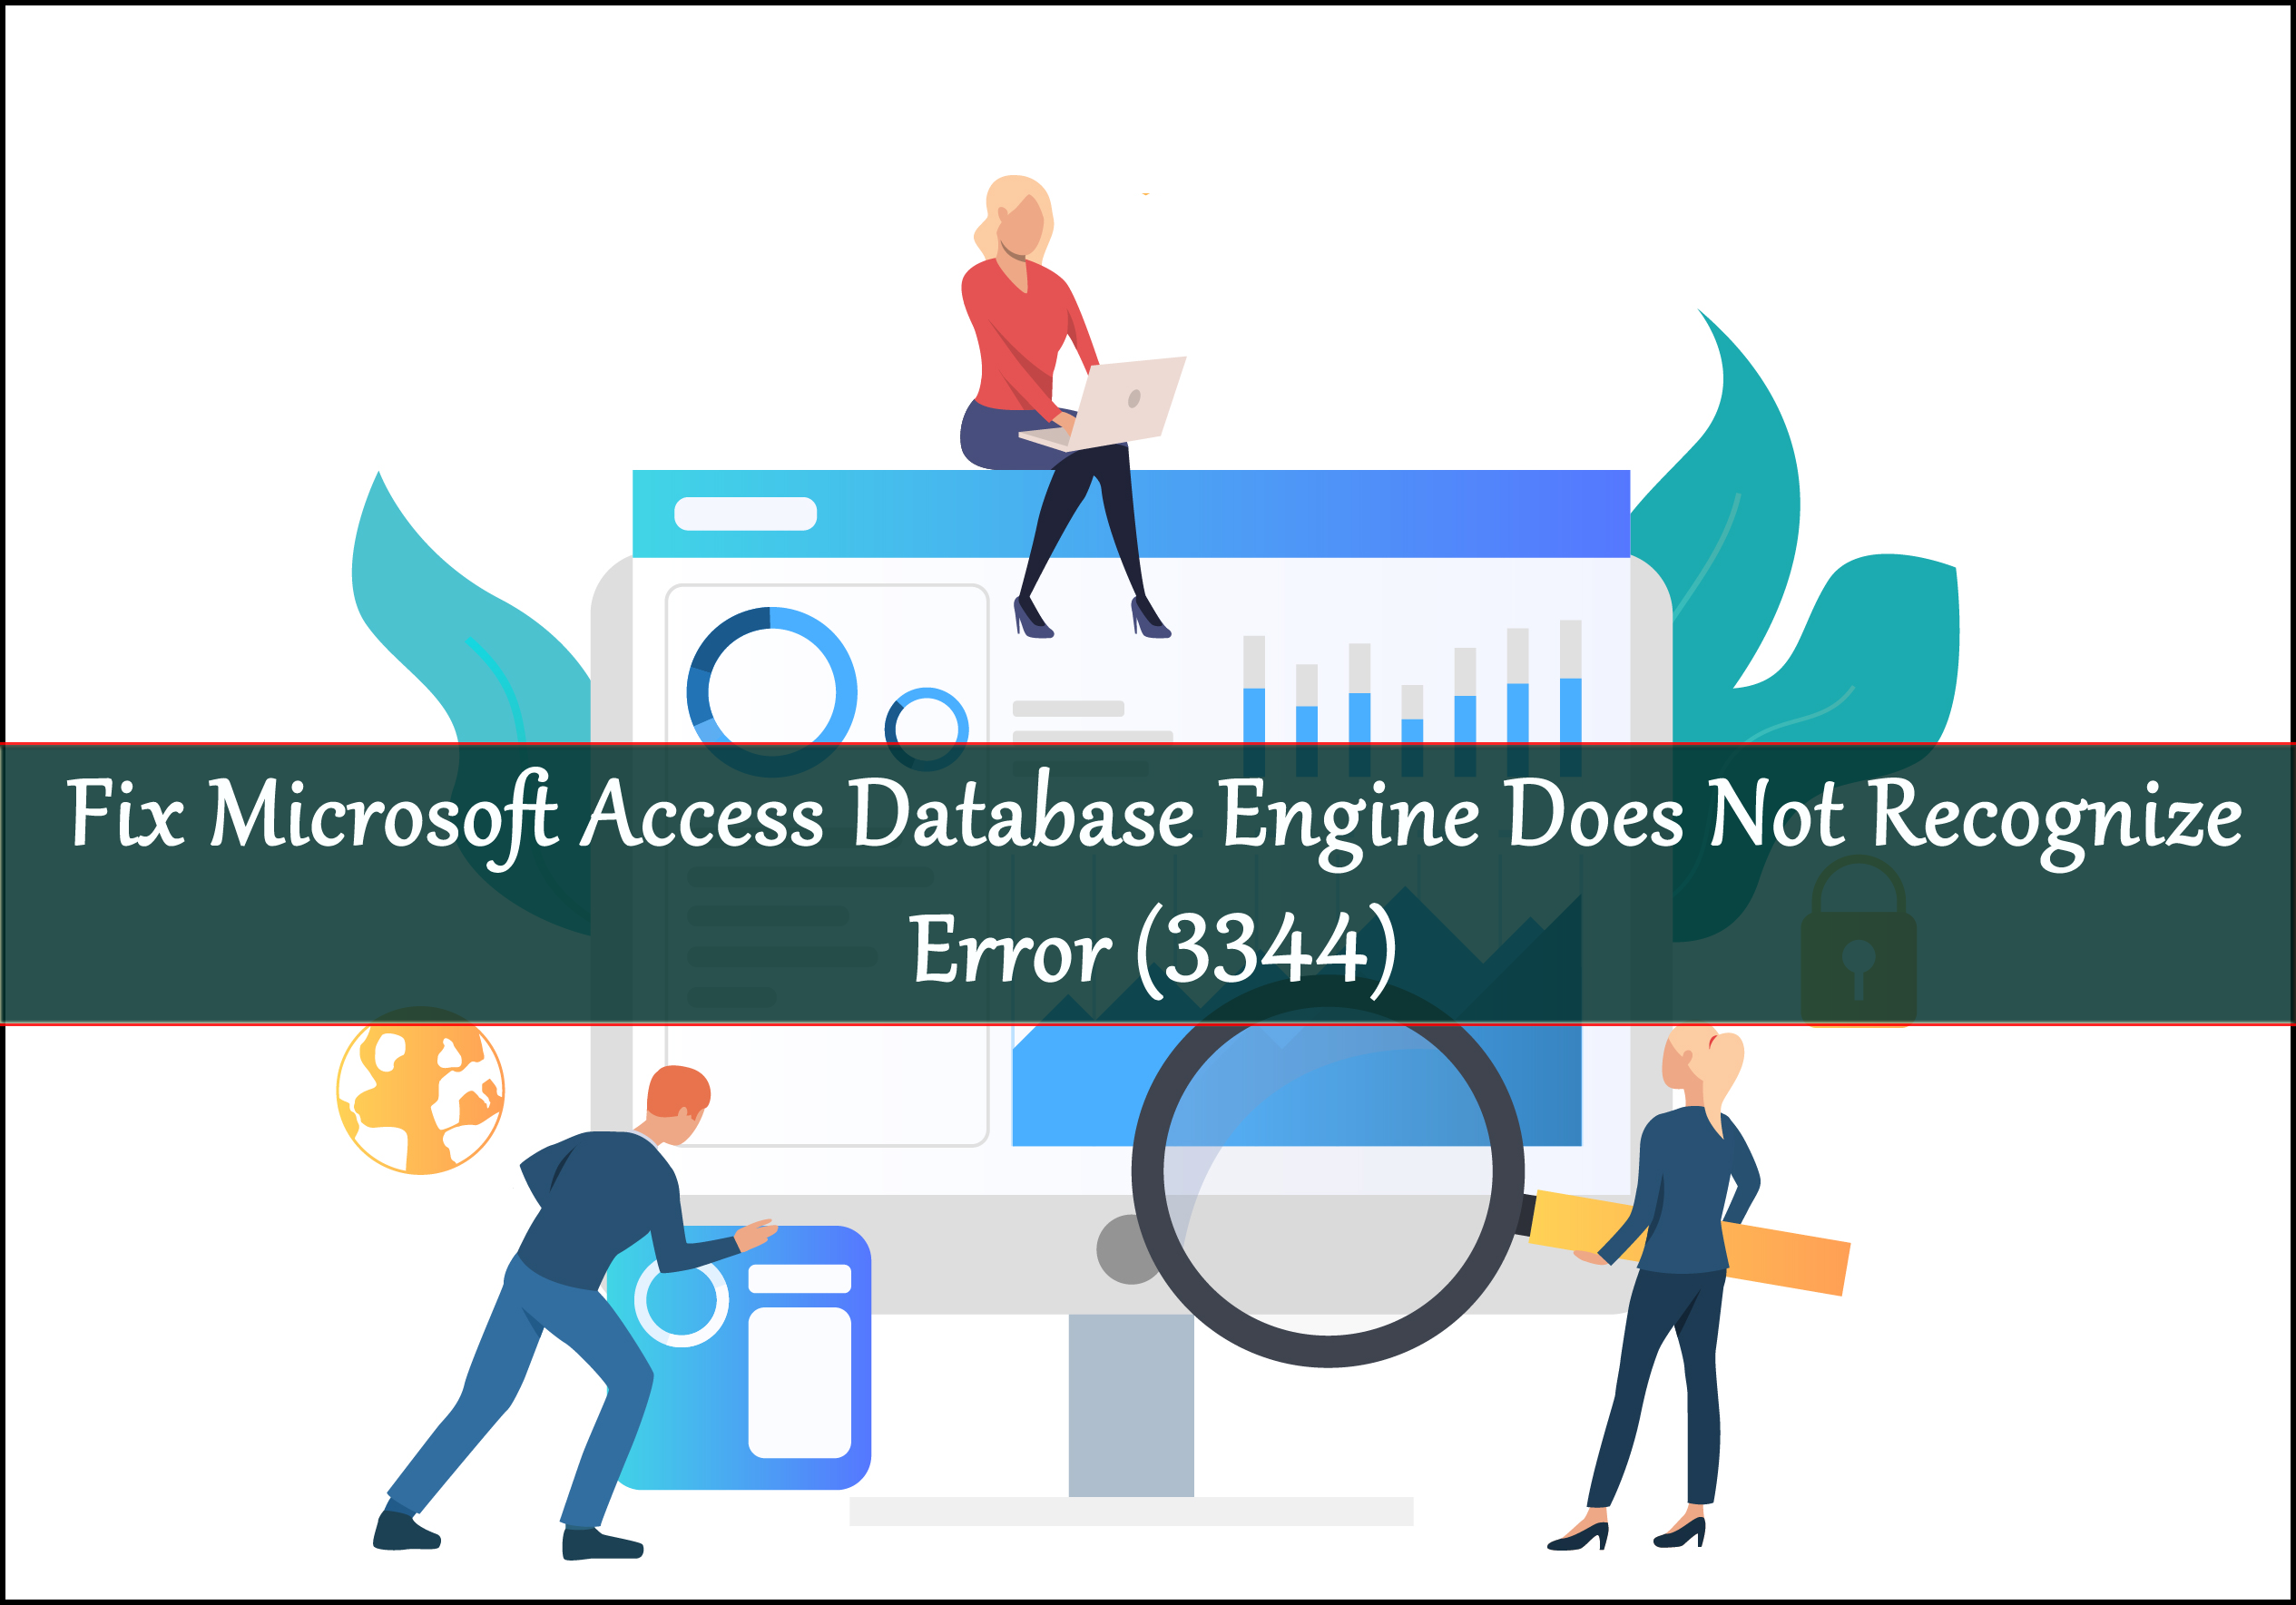 Microsoft Access Database Engine Does Not Recognize Error